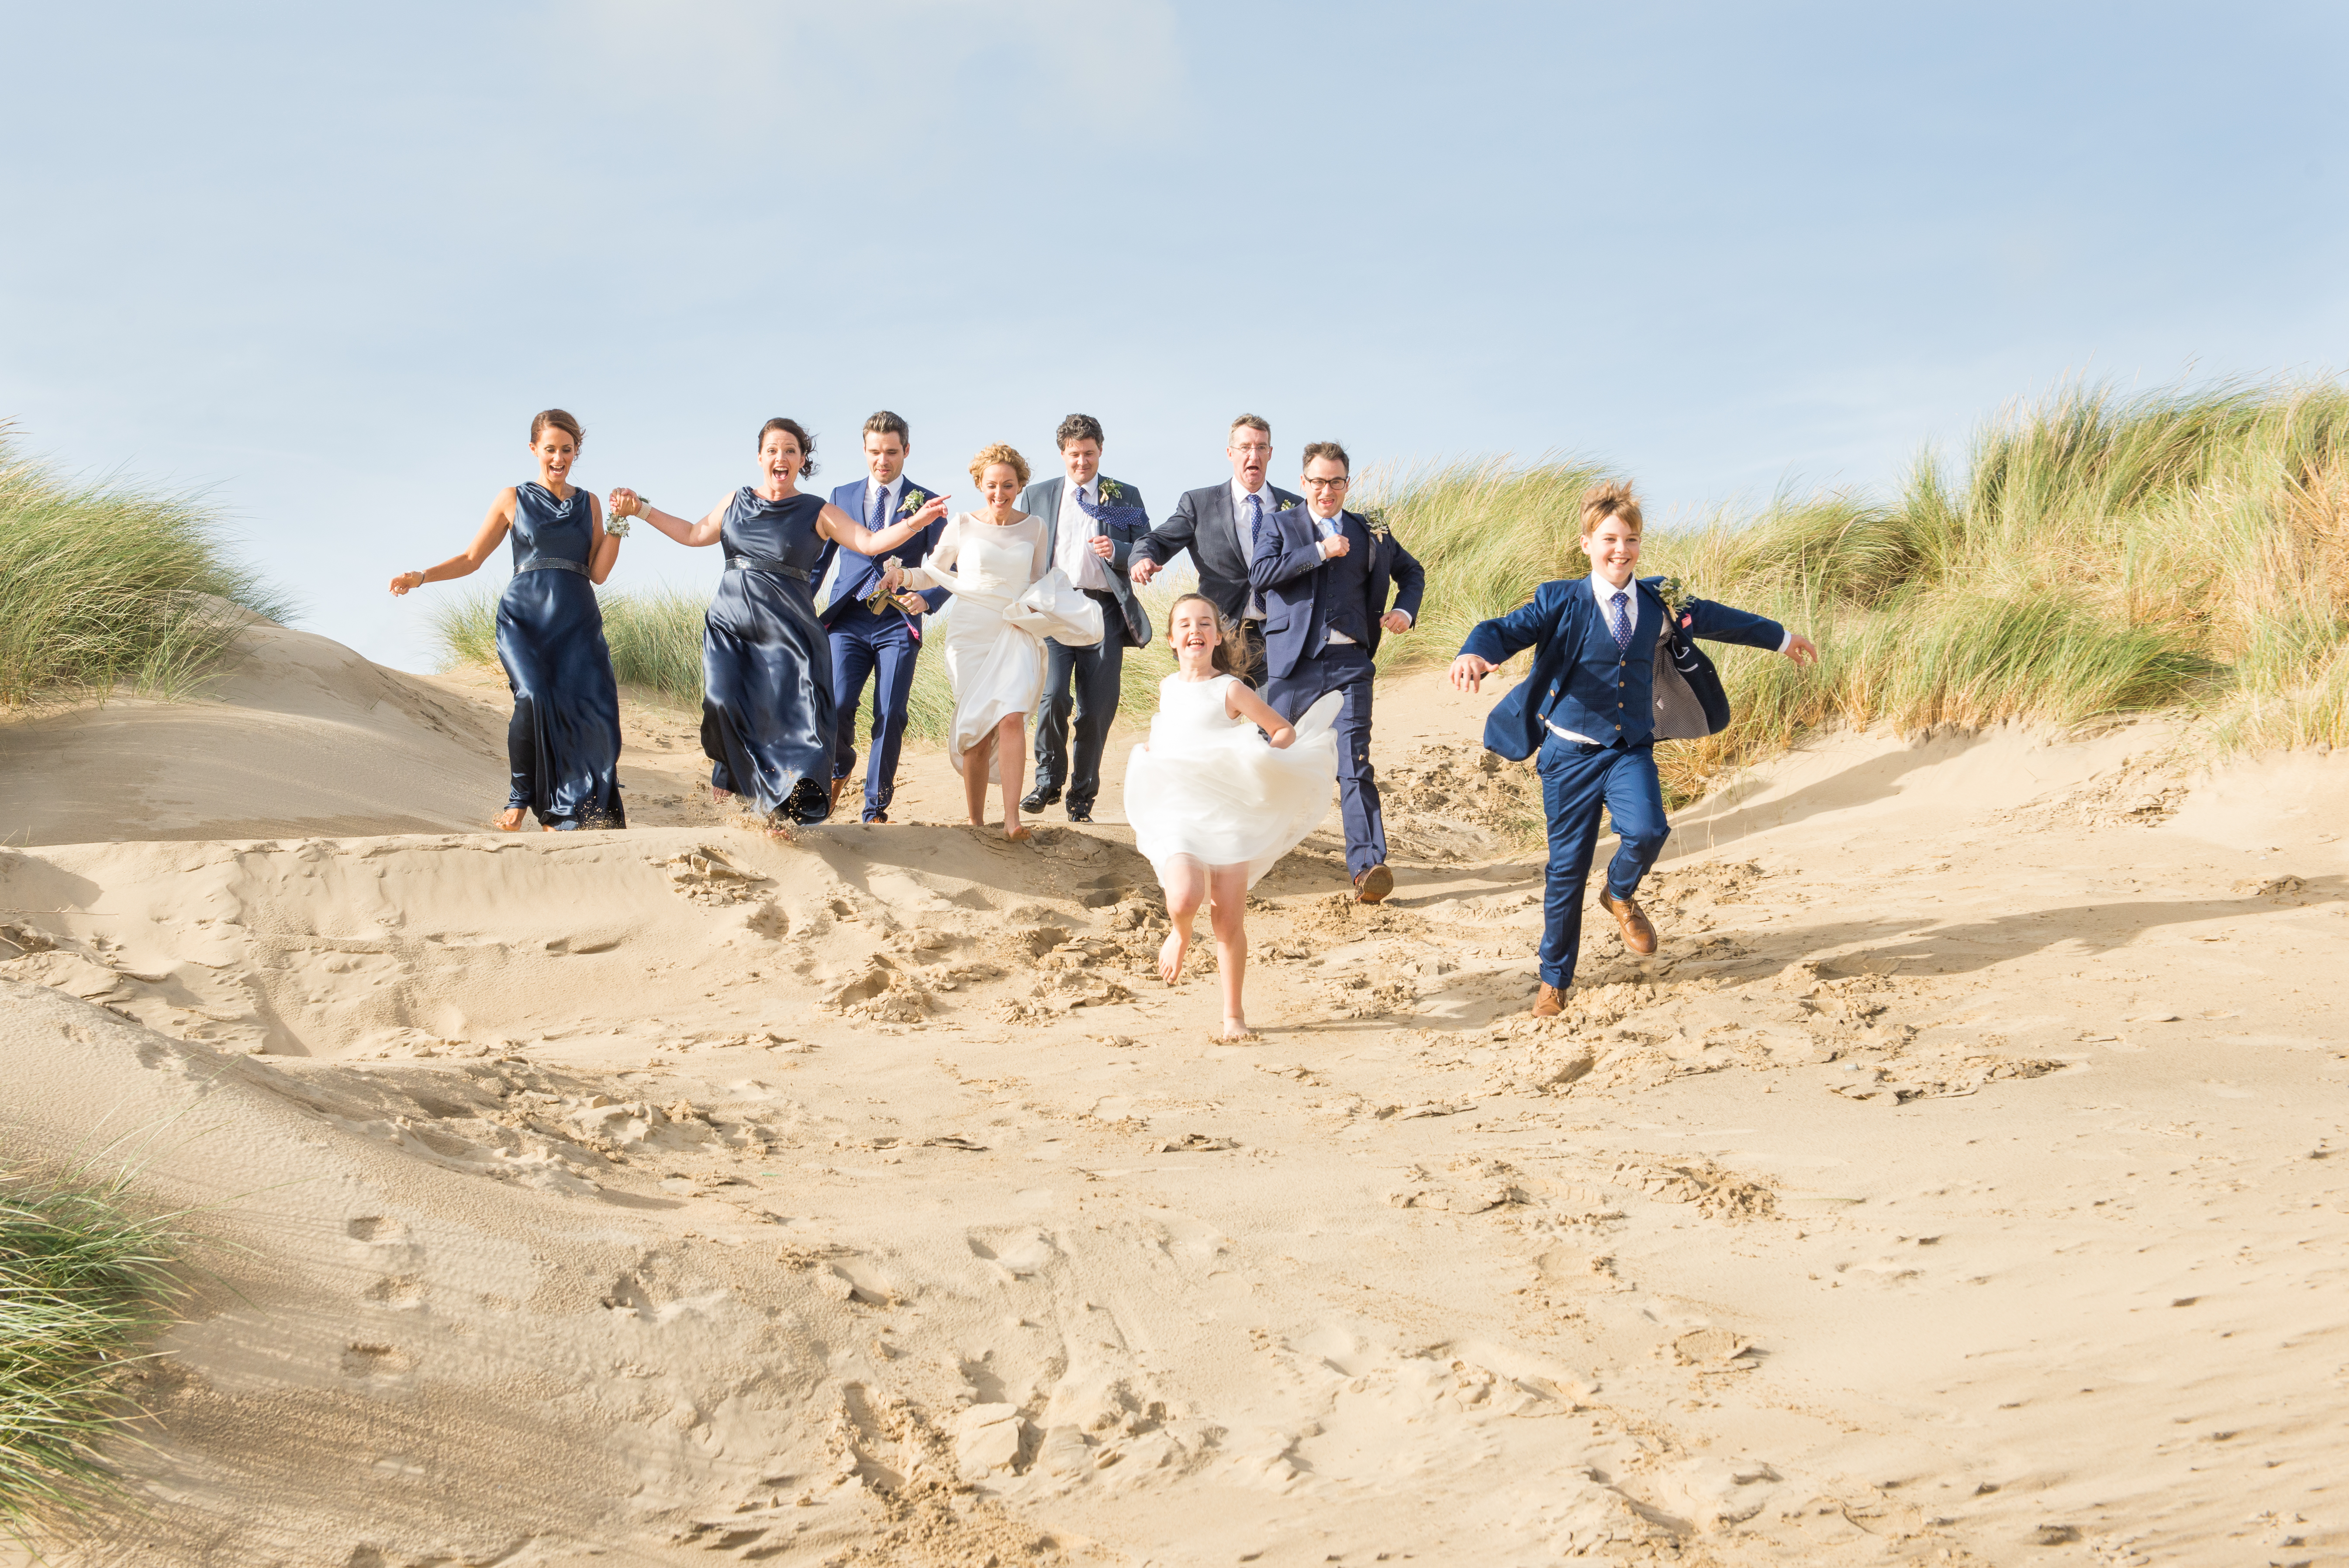 Real Wedding- Mr and Mrs Kindred's Romantic, Rustic and Relaxed Handmade October Wedding. Photography by Alex Rickard